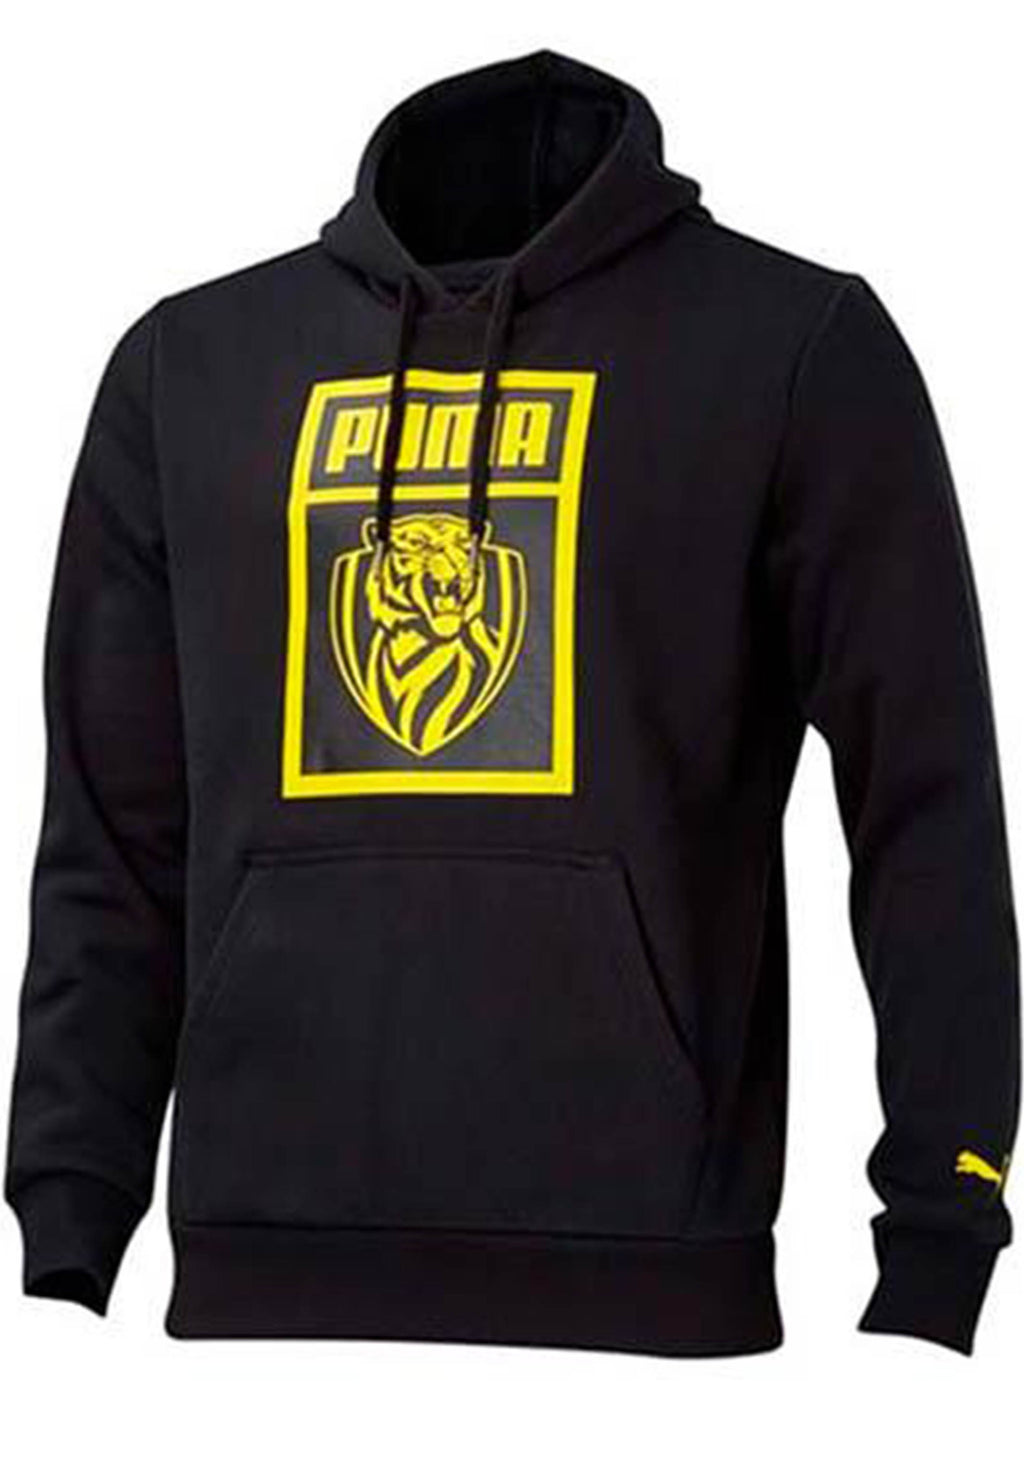 PUMA RICHMOND TIGERS FOOTBALL CLUB SHOE TAG HOODIE WOMENS BLACK <br> 70387301